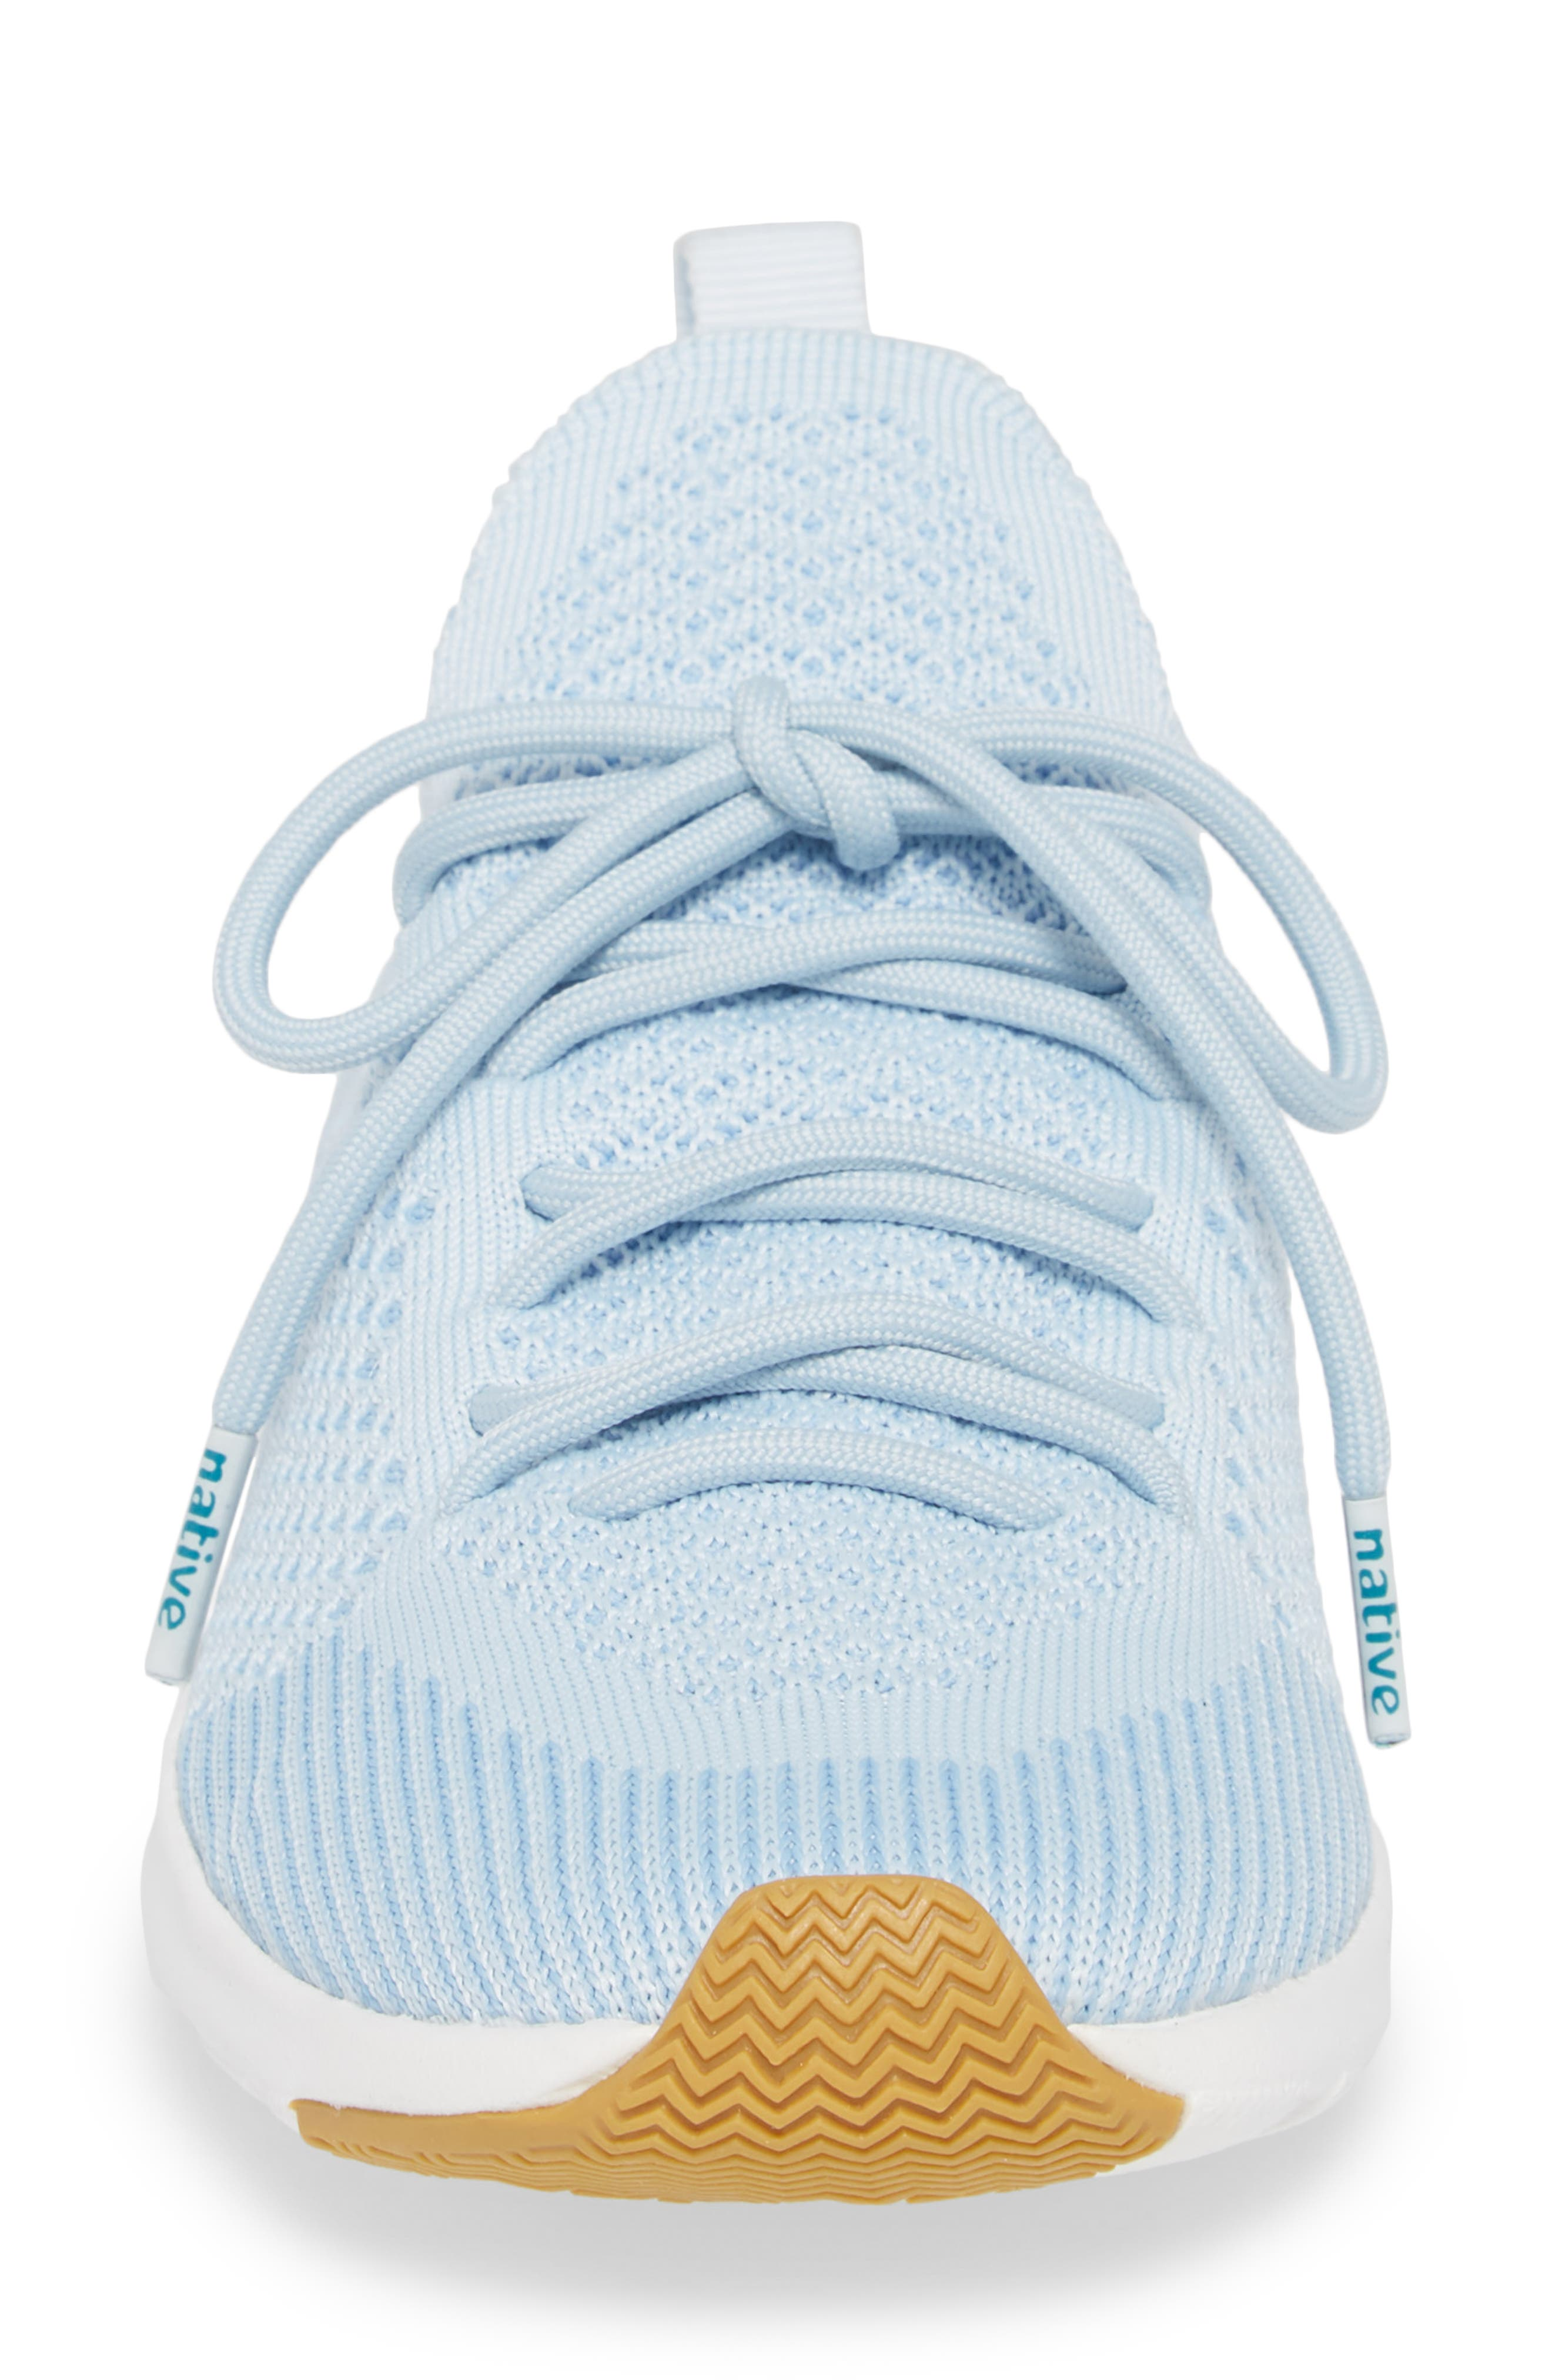 AP Mercury Liteknit Sneaker,                             Alternate thumbnail 4, color,                             AIR BLUE/ SHELL WHITE/ NATURAL